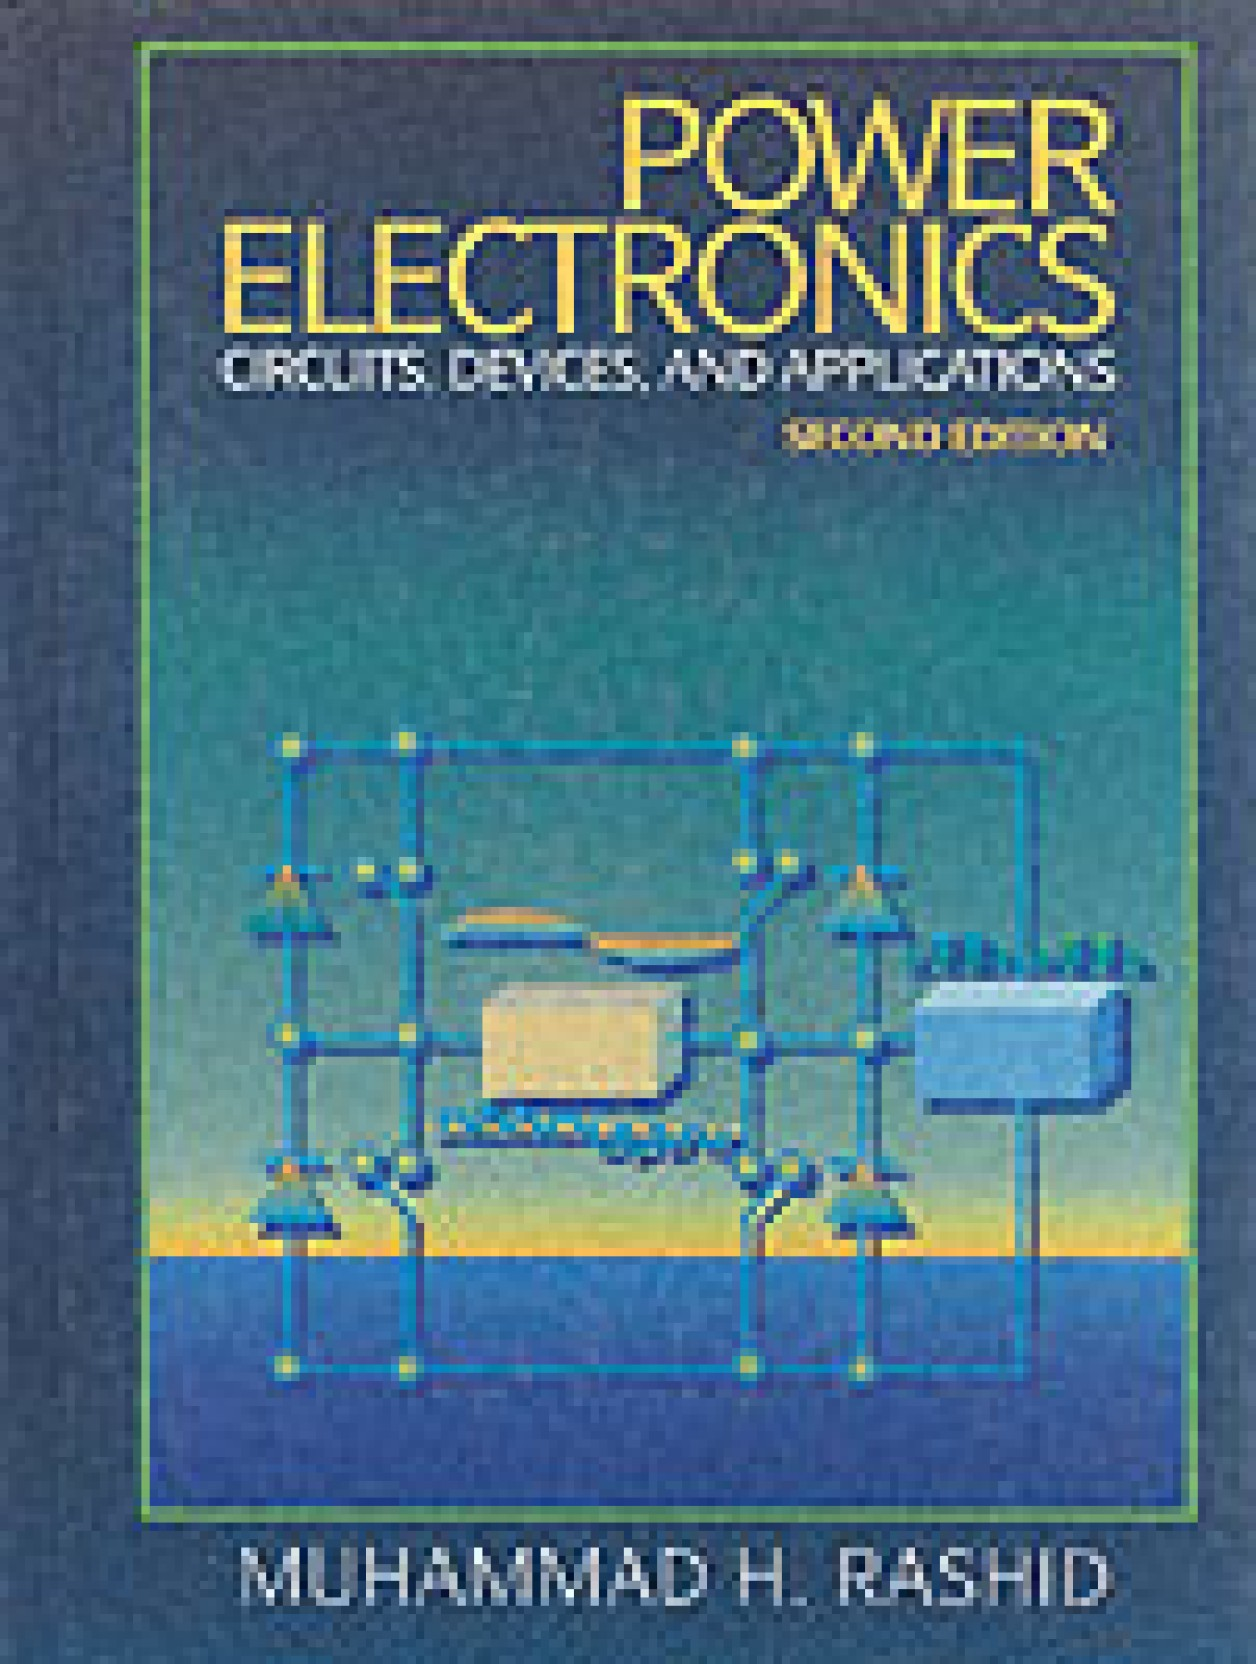 Power Electronics Circuits Devices And Applications 2nd Edition Book Big Diwali Sale Ends In18 Hrs 29 Mins 40 Secs